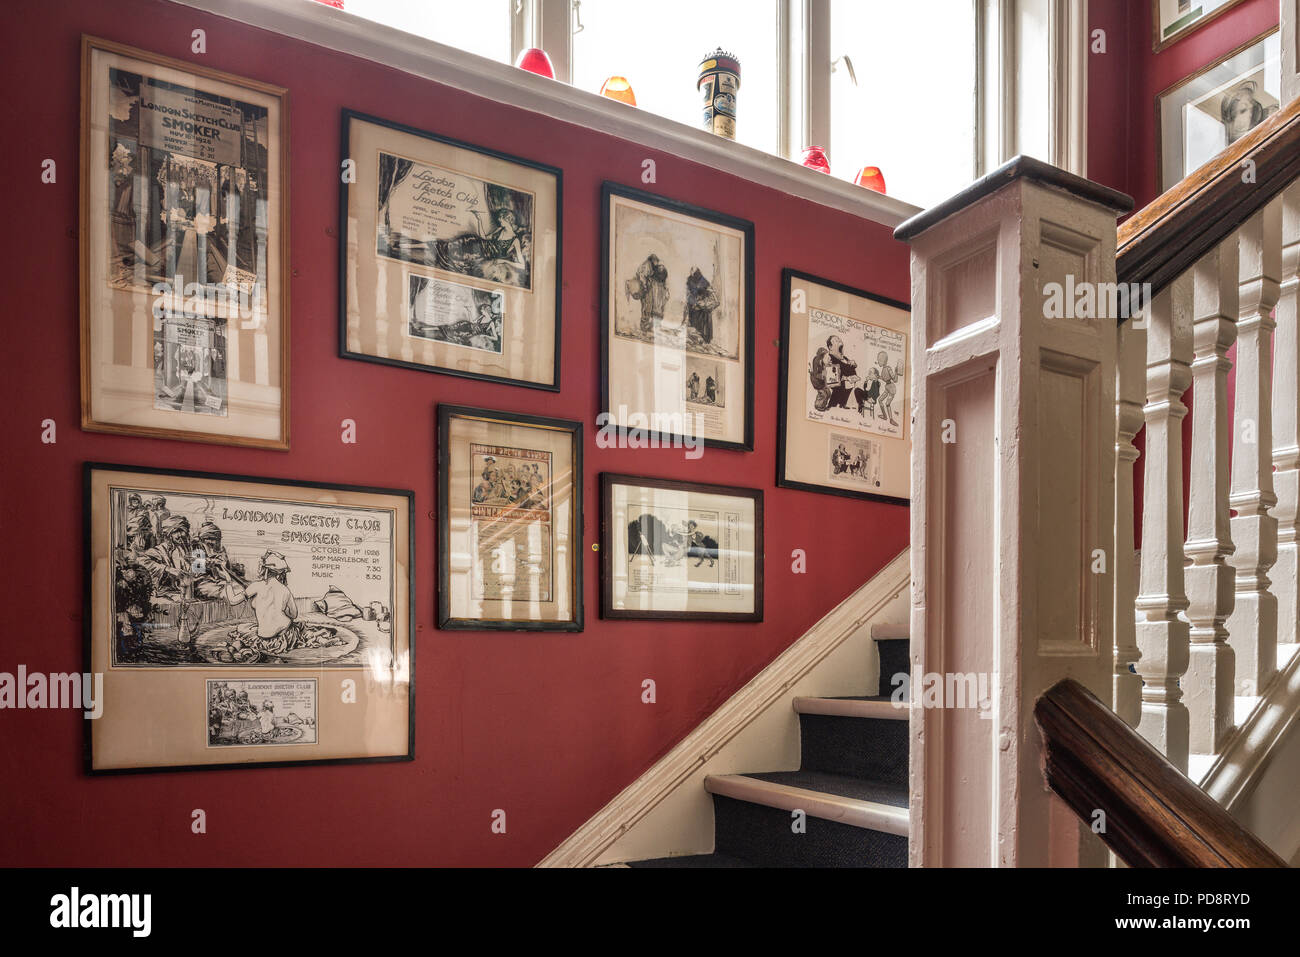 Old framed cartoons on the red staircase wall of the London Sketch Club - Stock Image